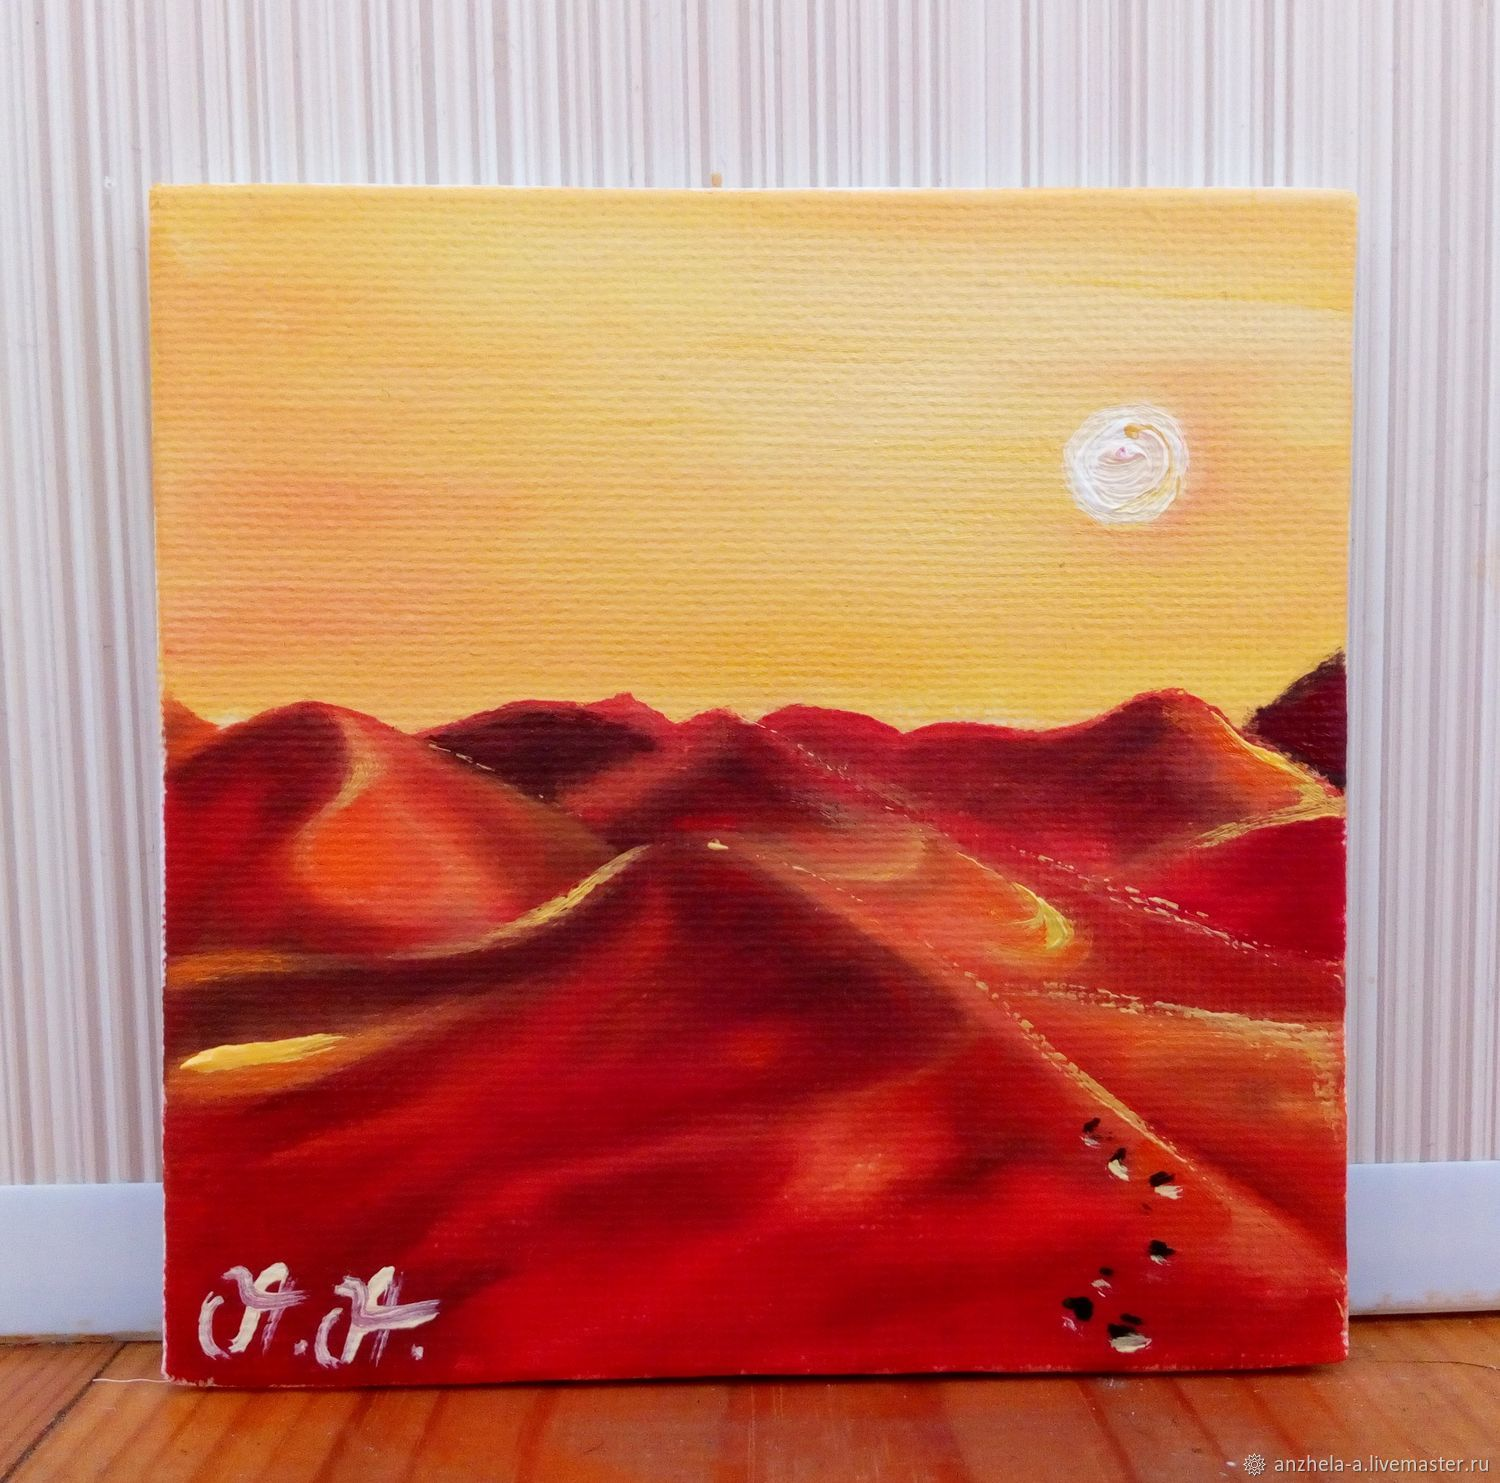 Author's miniature oil painting of the desert landscape 'Mirages' 10/10, Pictures, Moscow,  Фото №1